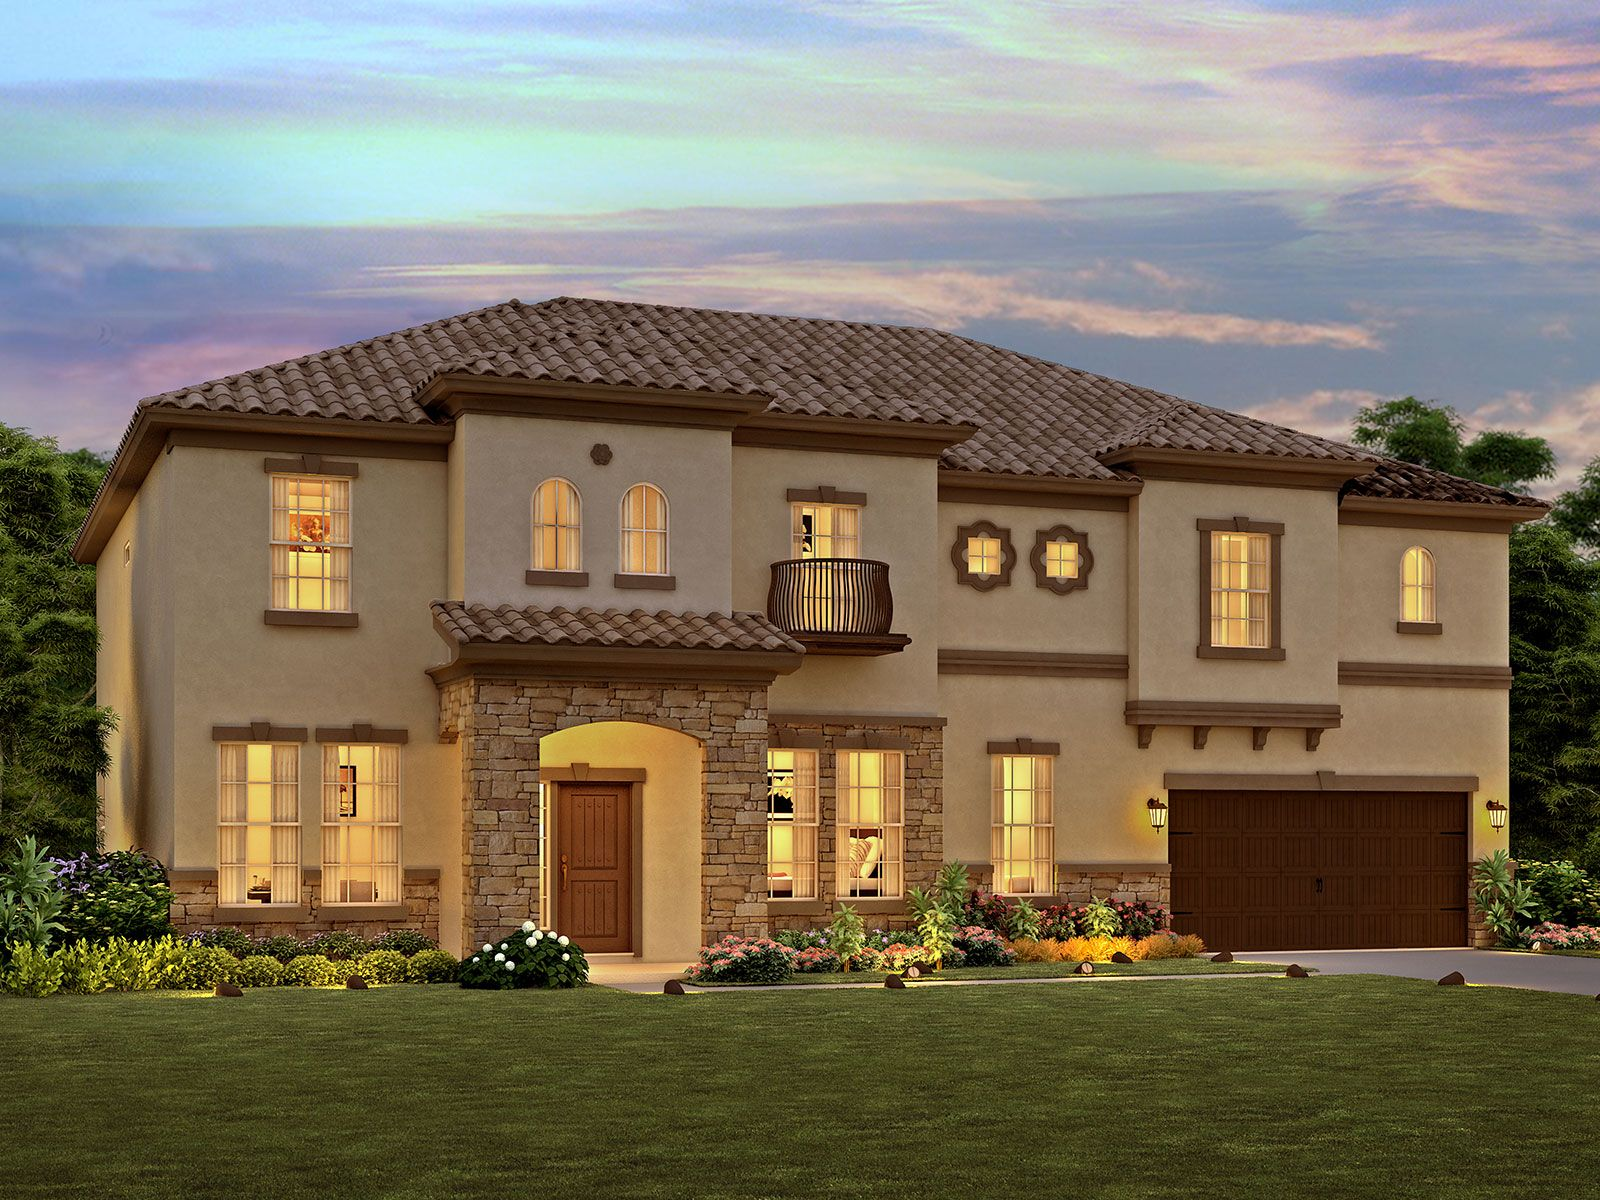 Meritage Homes Orlando FL Communities & Homes for Sale | NewHomeSource